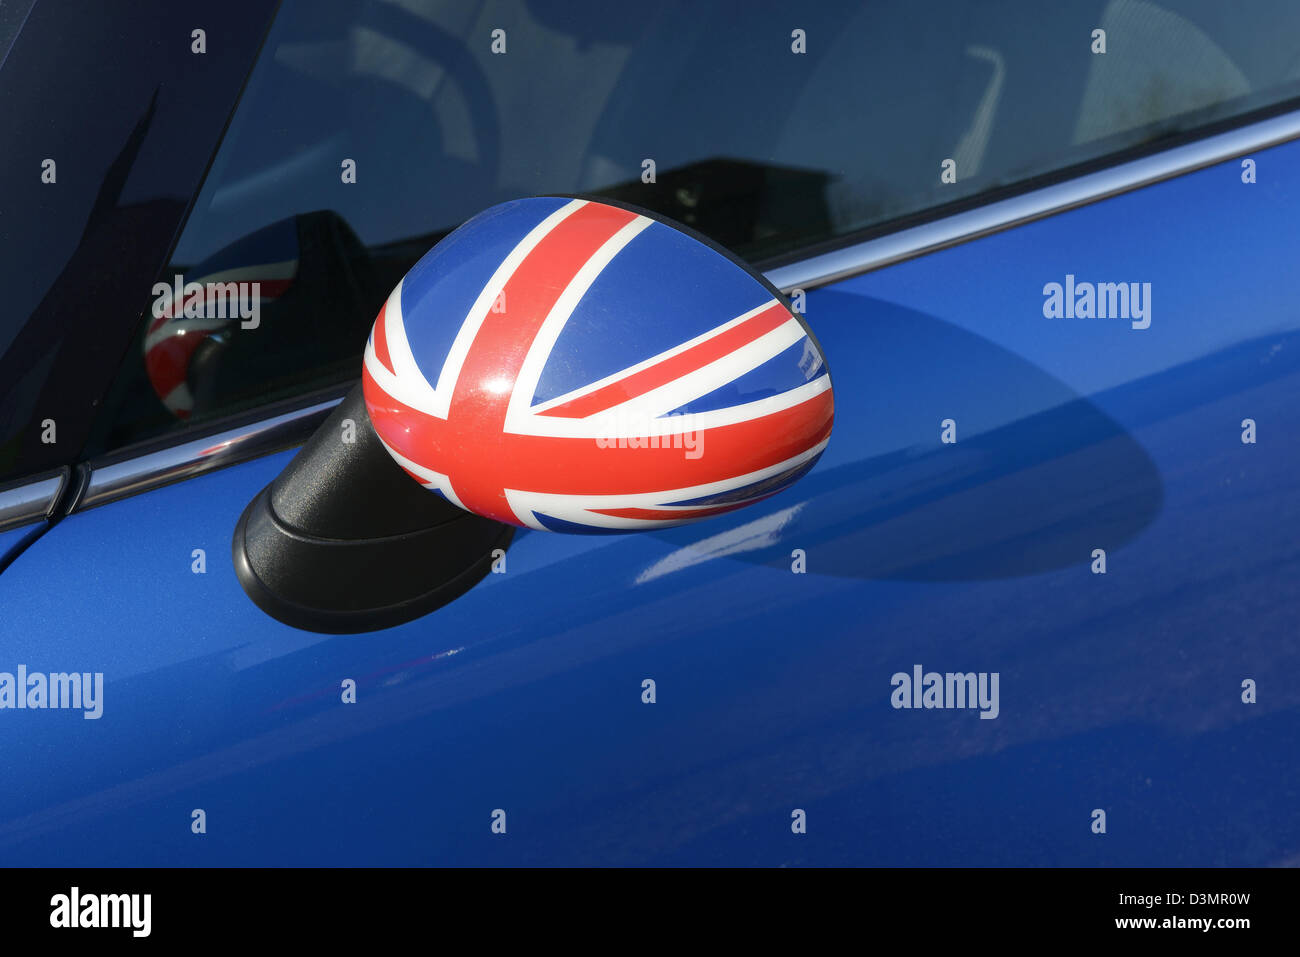 Car door mirror with a union jack flag - Stock Image